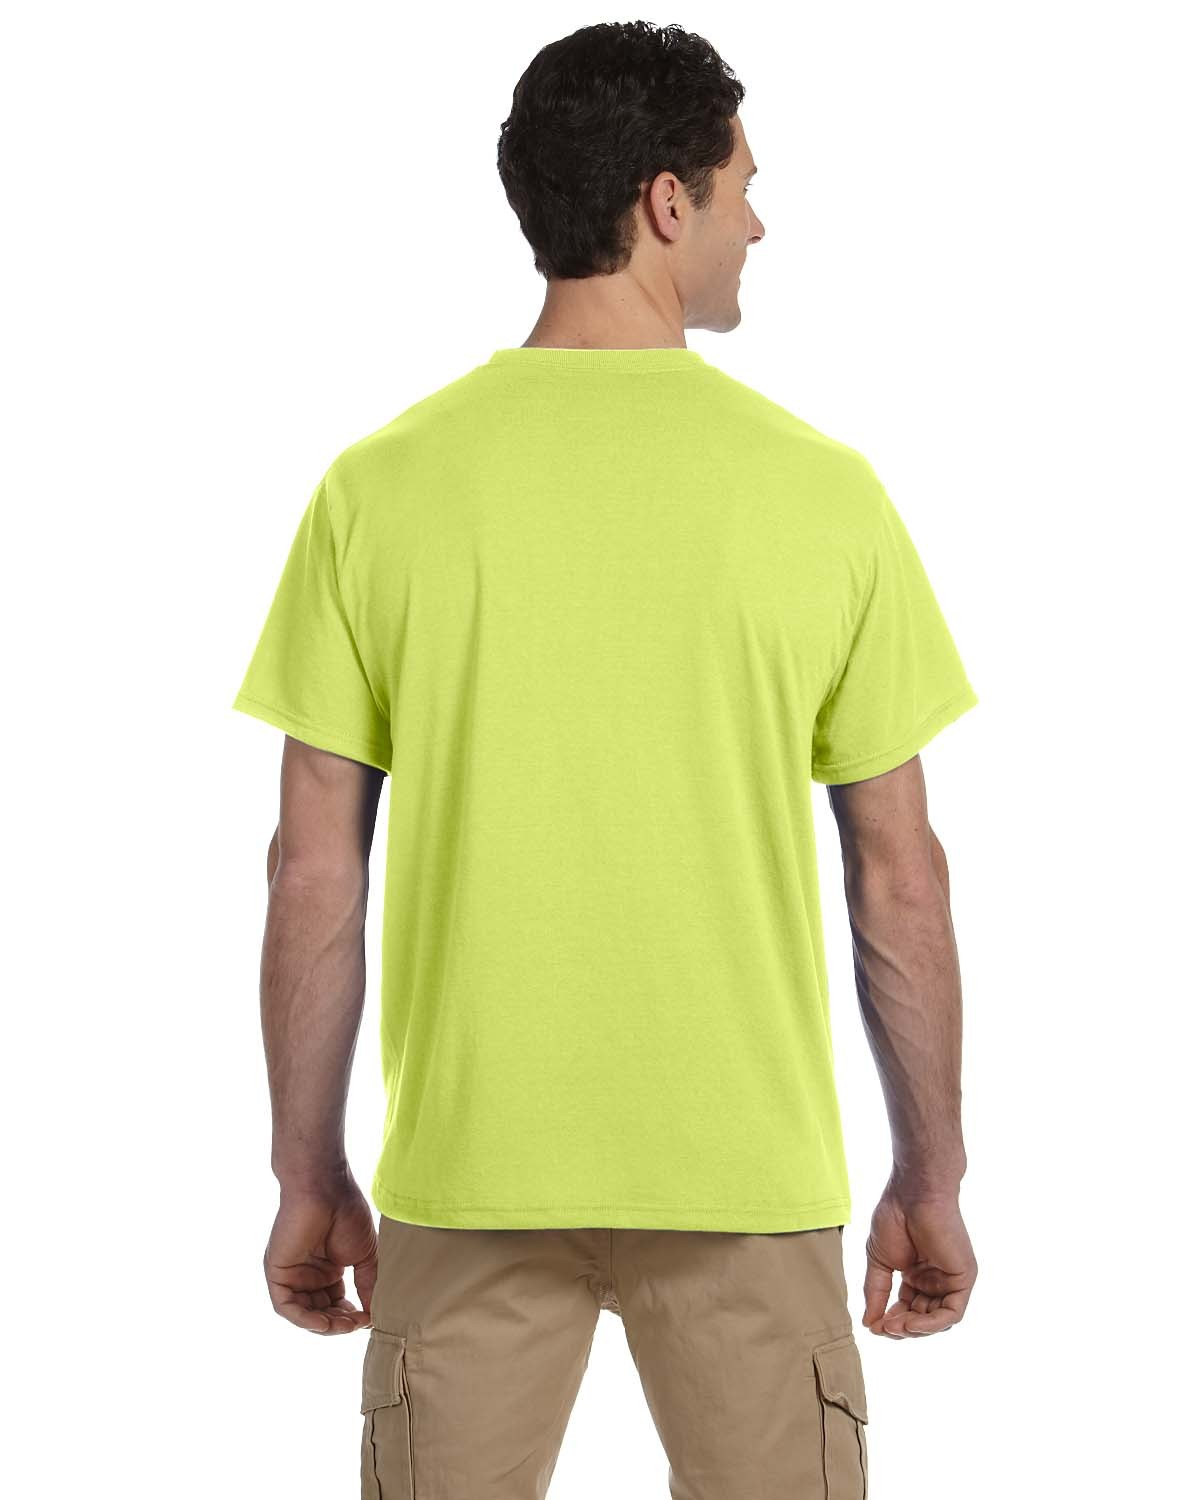 21M Jerzees SAFETY GREEN